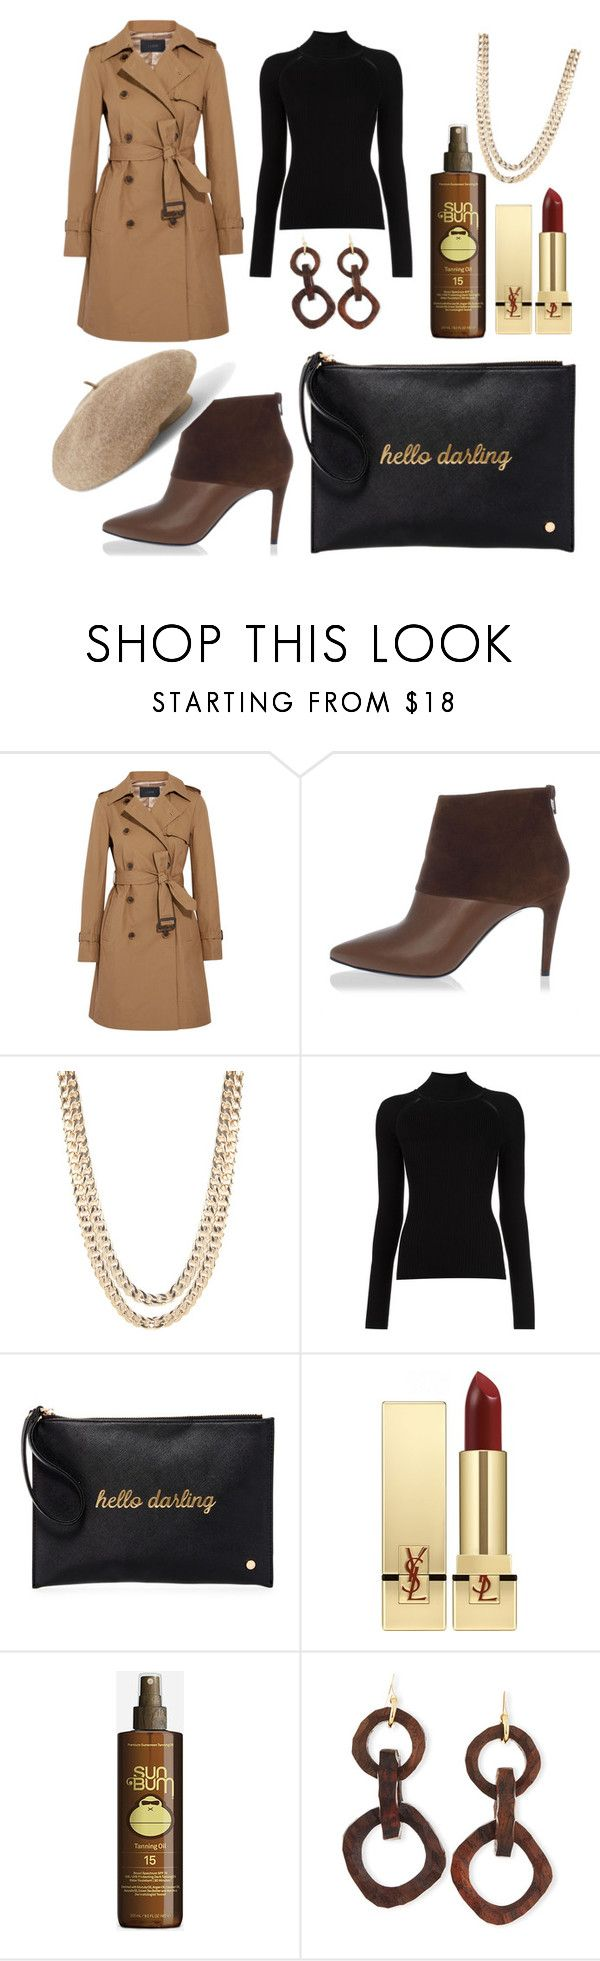 """""""STYLE IT"""" by fhawn ❤ liked on Polyvore featuring J.Crew, Pierre Hardy, BaubleBar, Misha Nonoo, Deux Lux, Yves Saint Laurent, Sun Bum, NEST Jewelry and Venus"""